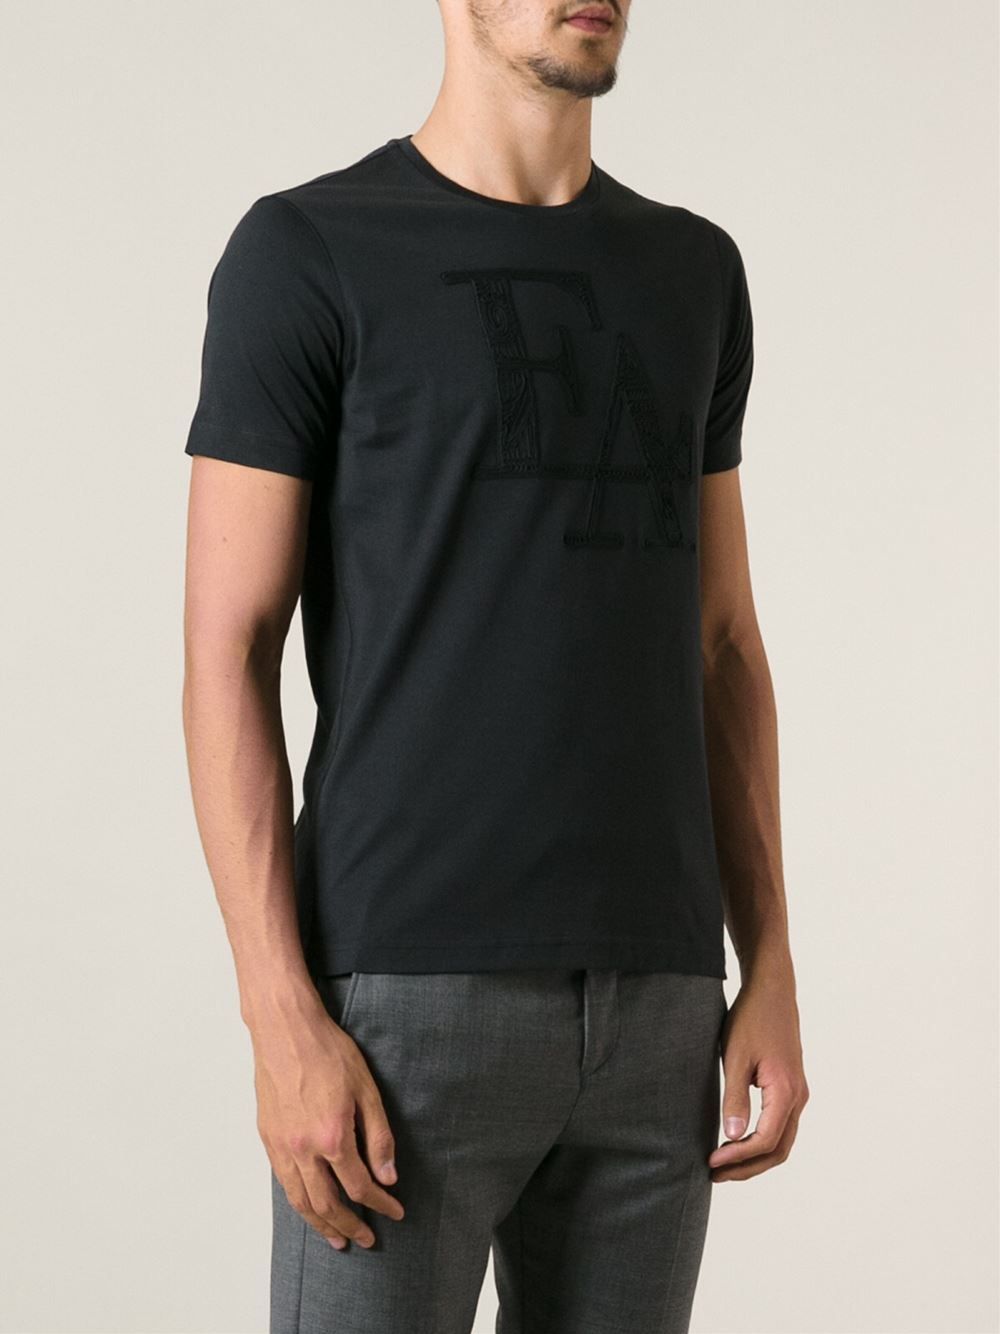 emporio armani embroidered logo t shirt in black for men. Black Bedroom Furniture Sets. Home Design Ideas